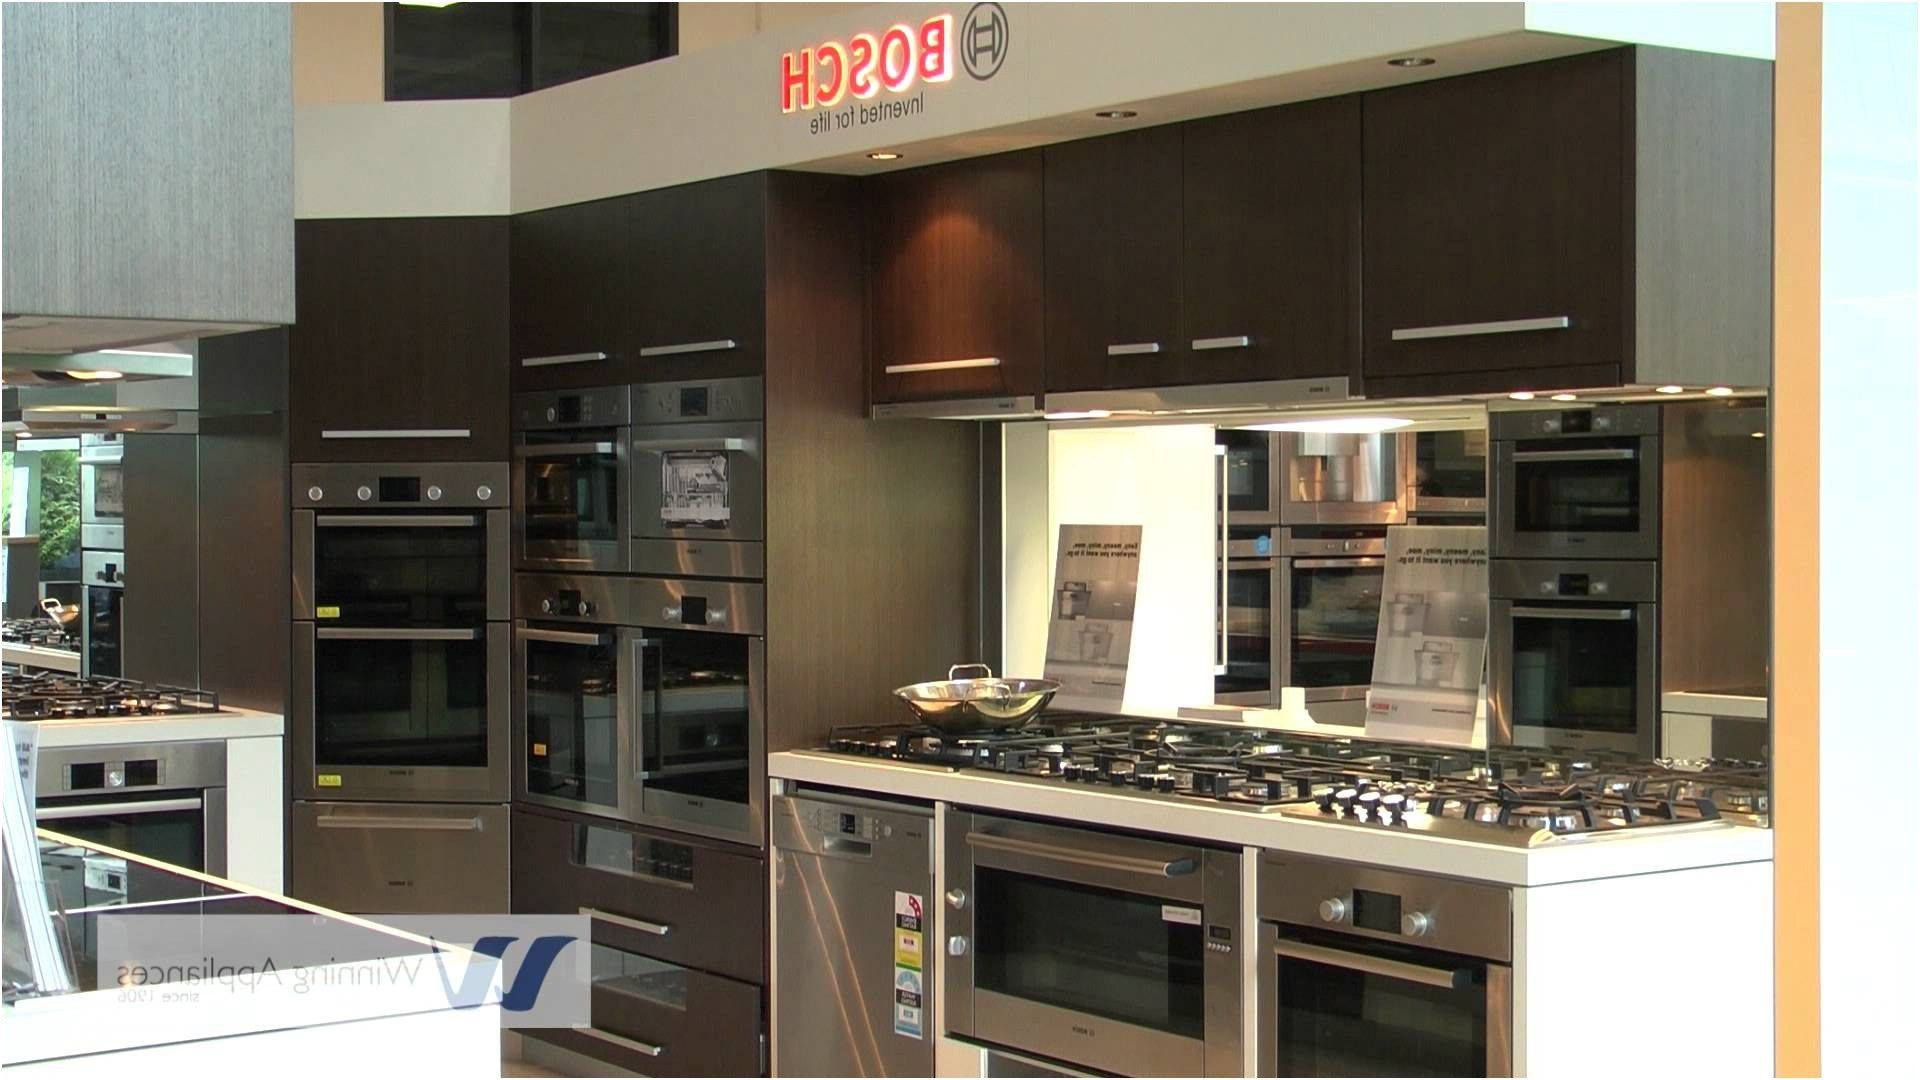 the latest kitchen appliance trends winning appliances ...